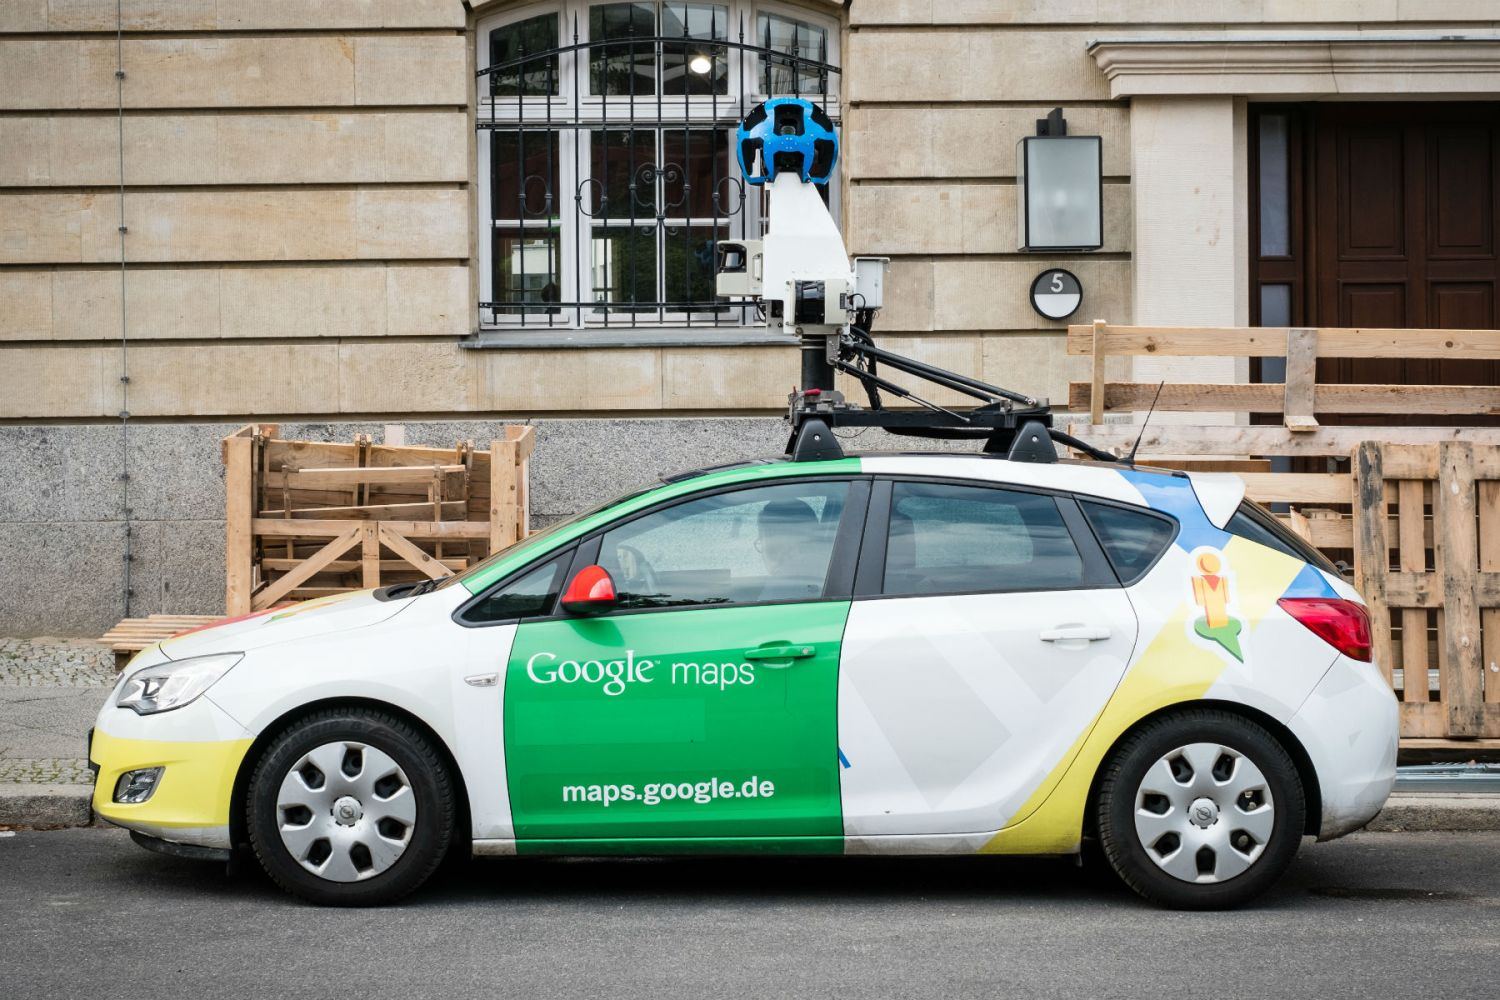 You can now drive your own Google Street View car | Motoring ... Google Car Maps Street View on google earth street view, google search, google earth, google maps vehicle, google street view in africa, flickr street view car, google street view philippines, google art project, google maps camera car, google maps bird's eye view, google street view in latin america, google street view in asia, google maps android icon, google street view privacy concerns, aspen movie map, google street view in europe, google maps cars 2008, google street view washington dc, web mapping, nokia street view car, google street view in oceania, apple street view car, competition of google street view, google air view, location view, google street view wrecks, google street view schedule, google street view in the united states,